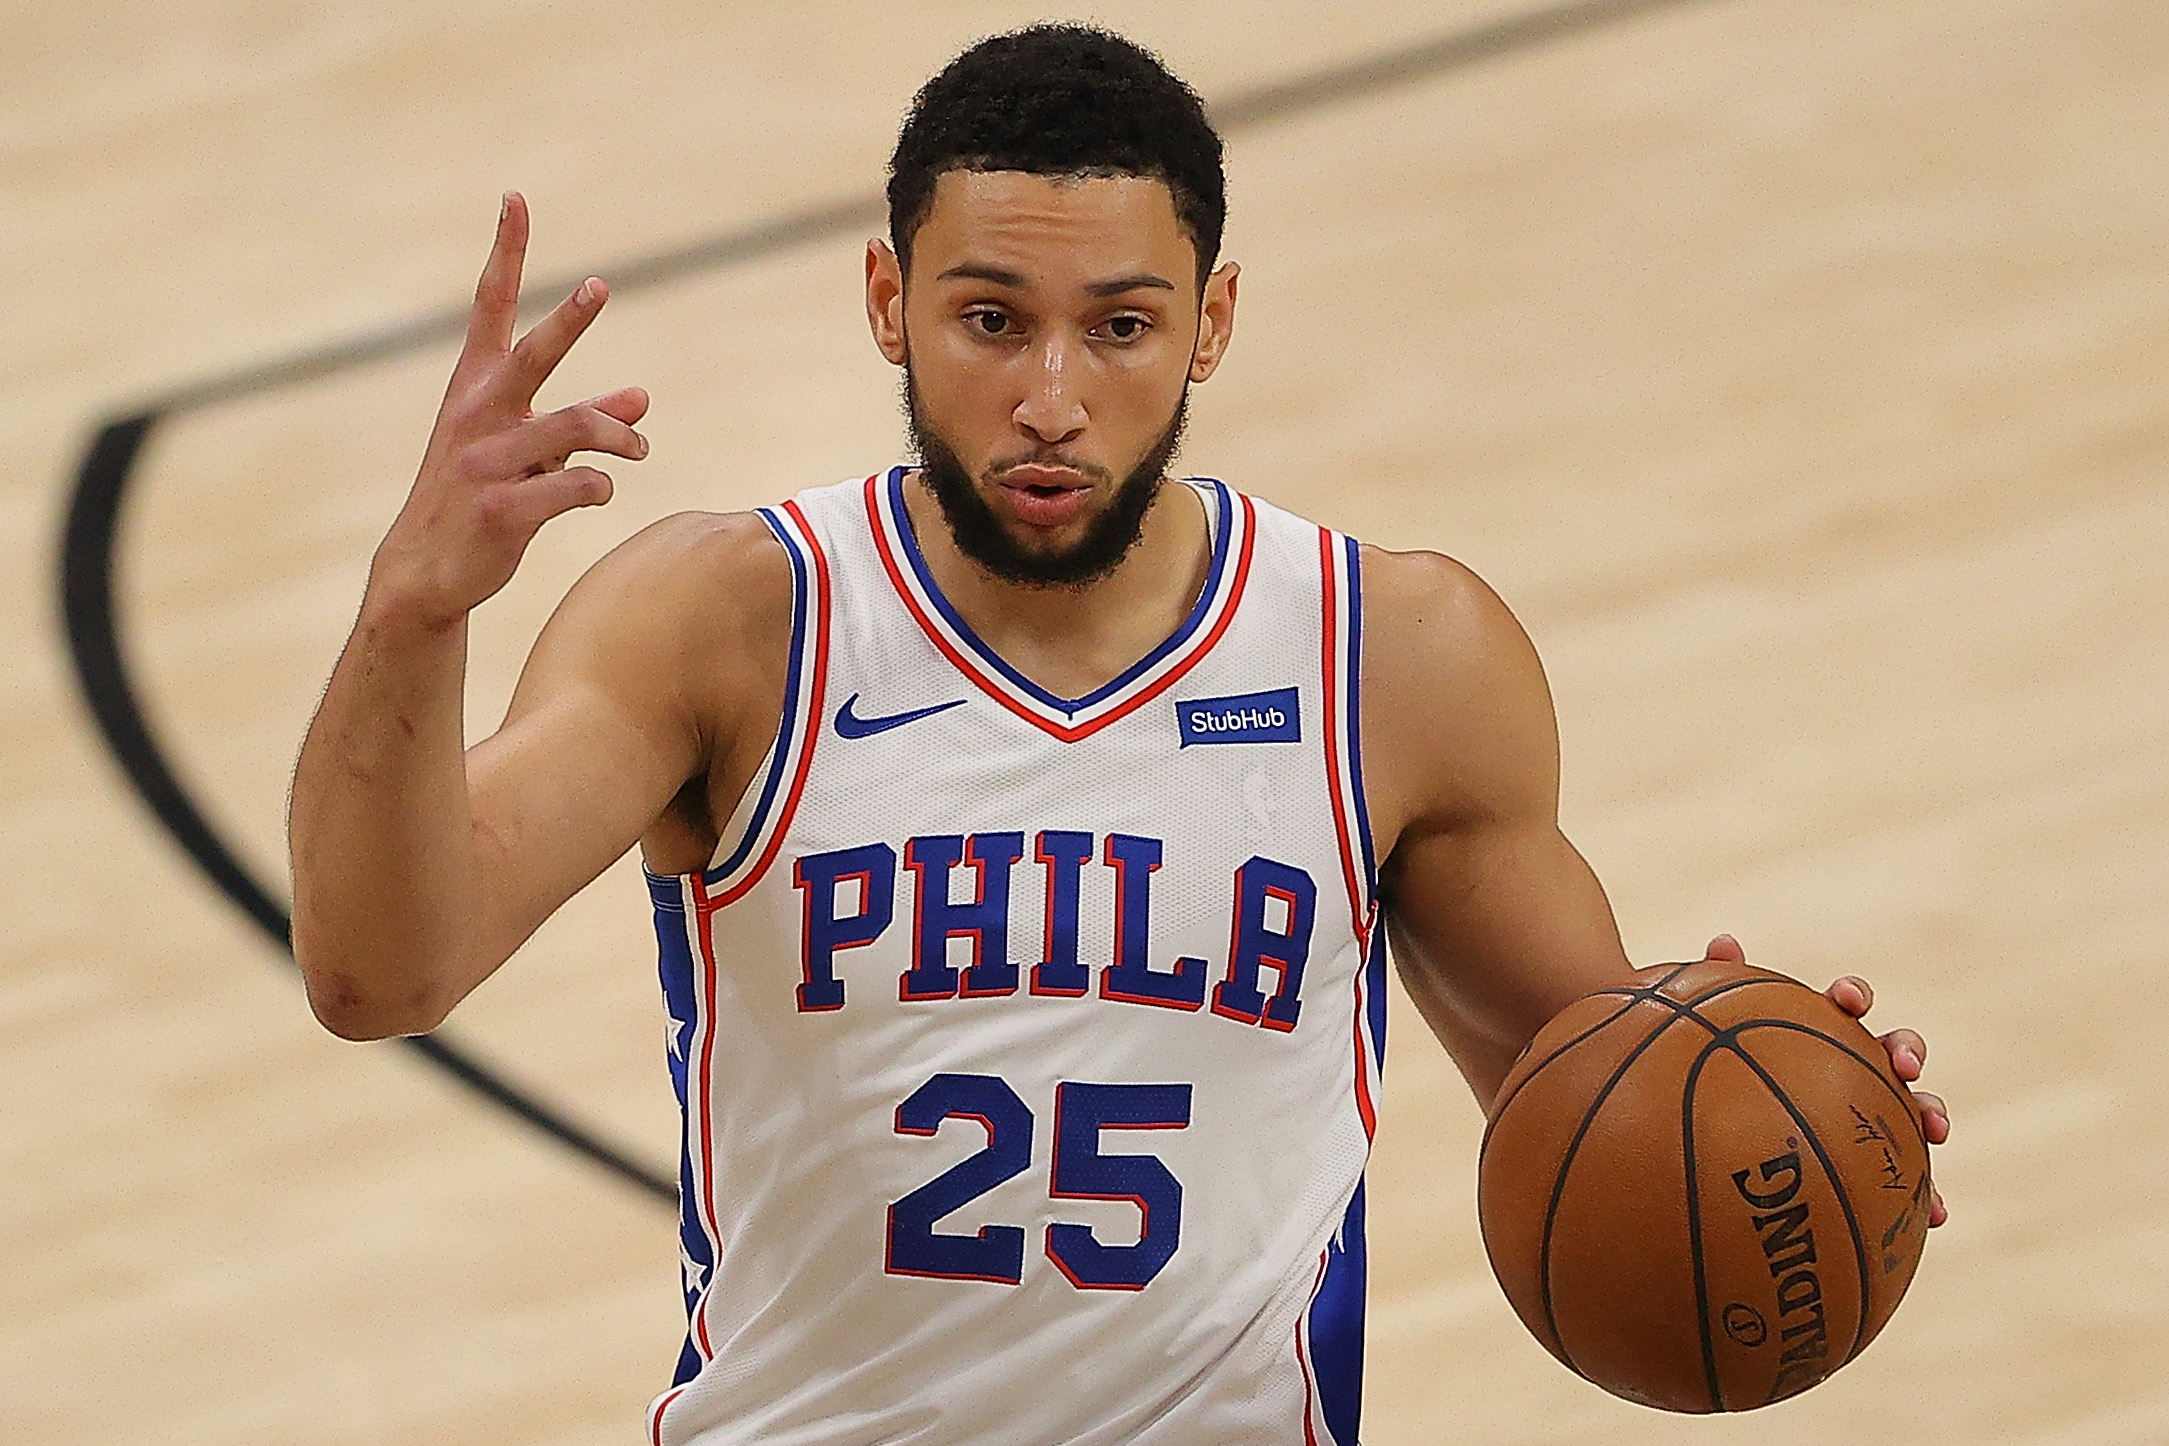 Ben Simmons #25 of the Philadelphia 76ers calls out a play against the Atlanta Hawks during the first half of game 6 of the Eastern Conference Semifinals.